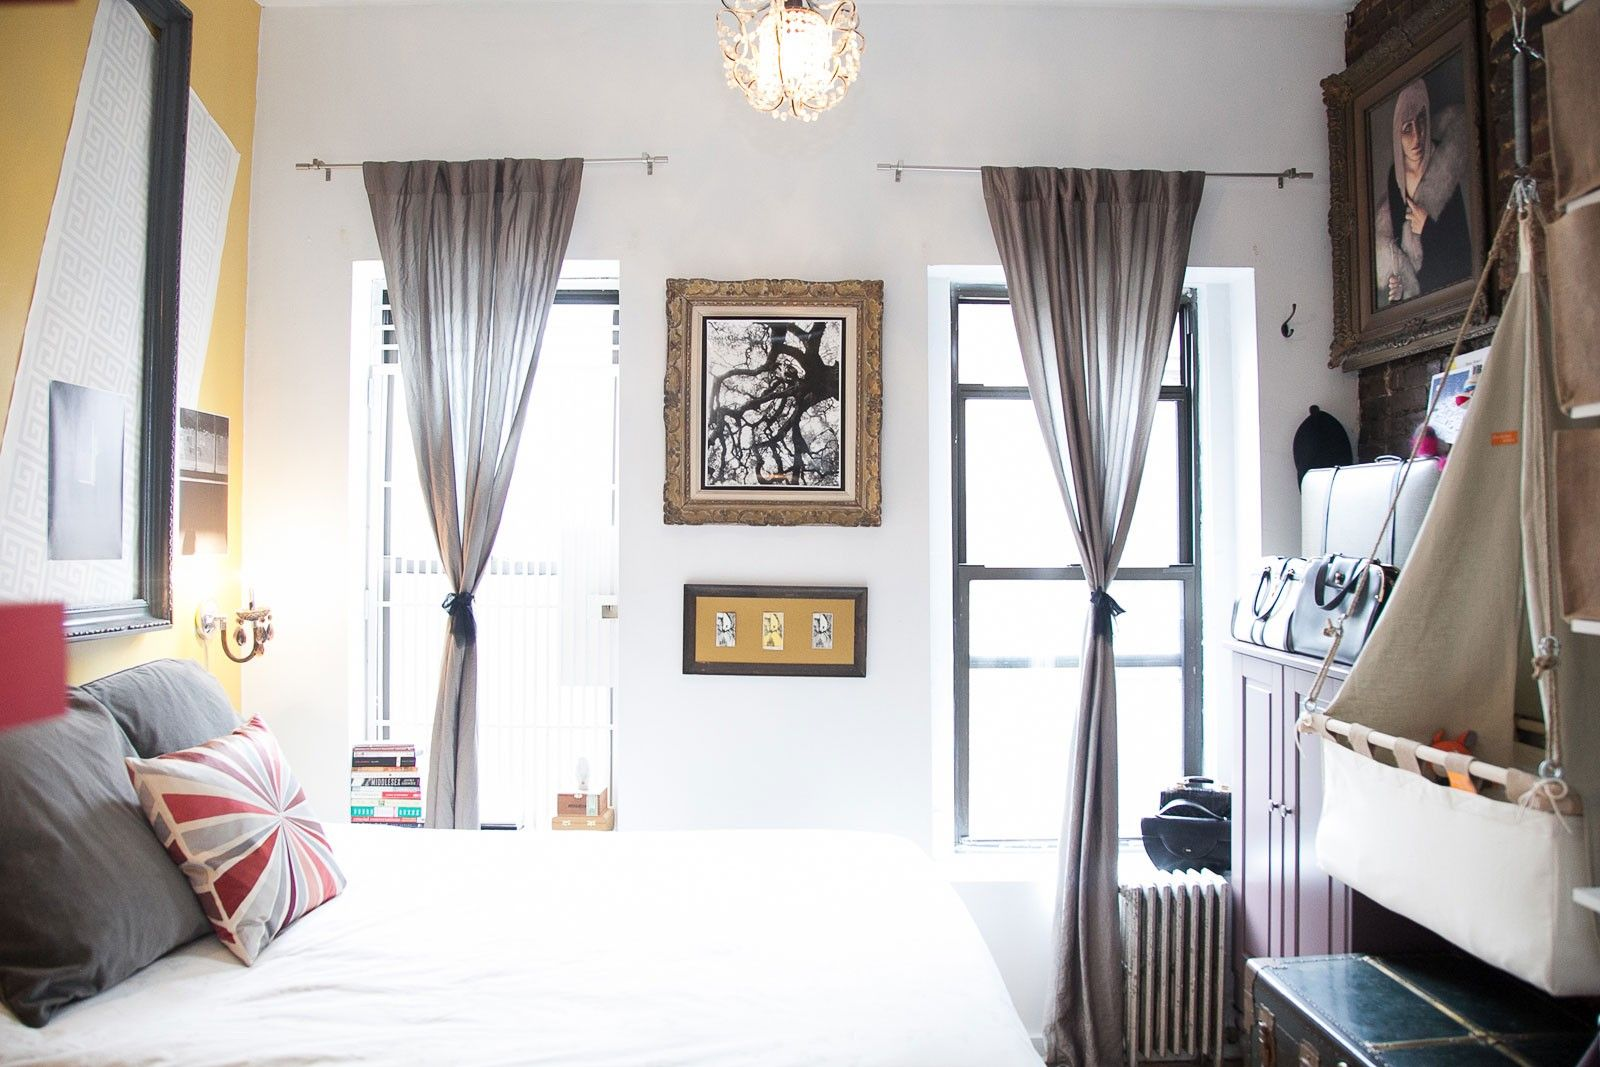 Baby Room Decor Tips For Small Spaces - NYC   Square feet, Small ...